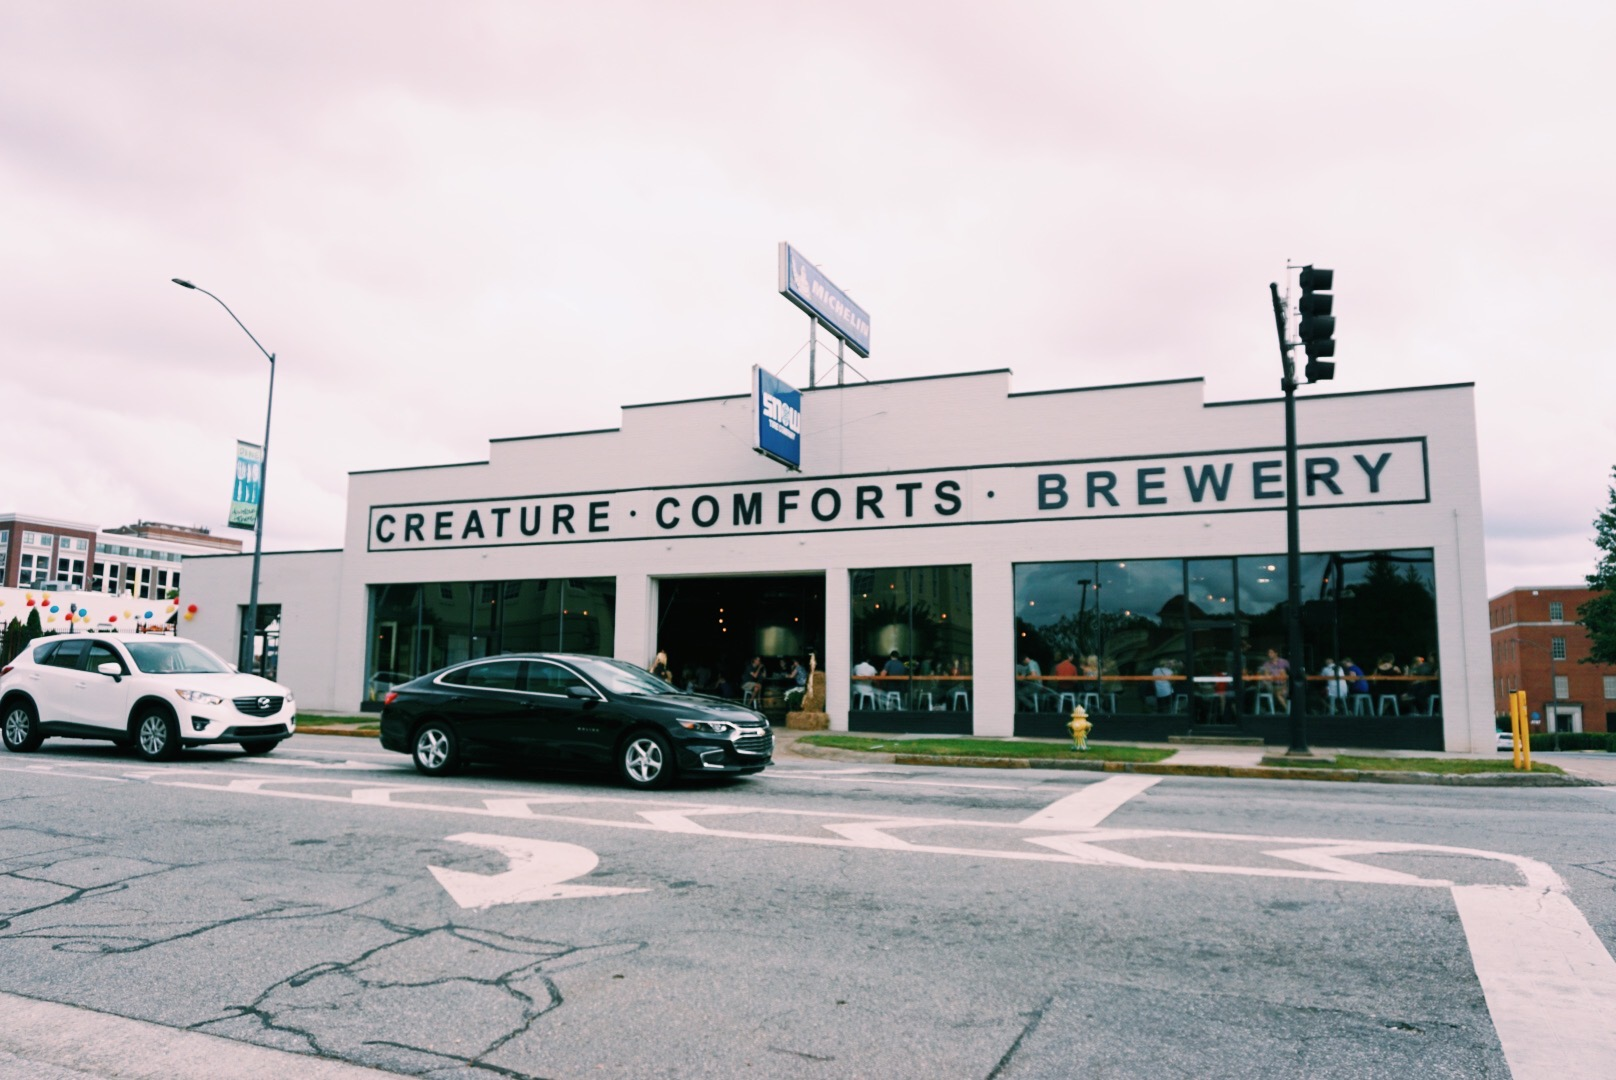 Creature Comforts brewery in downtown Athens, GA